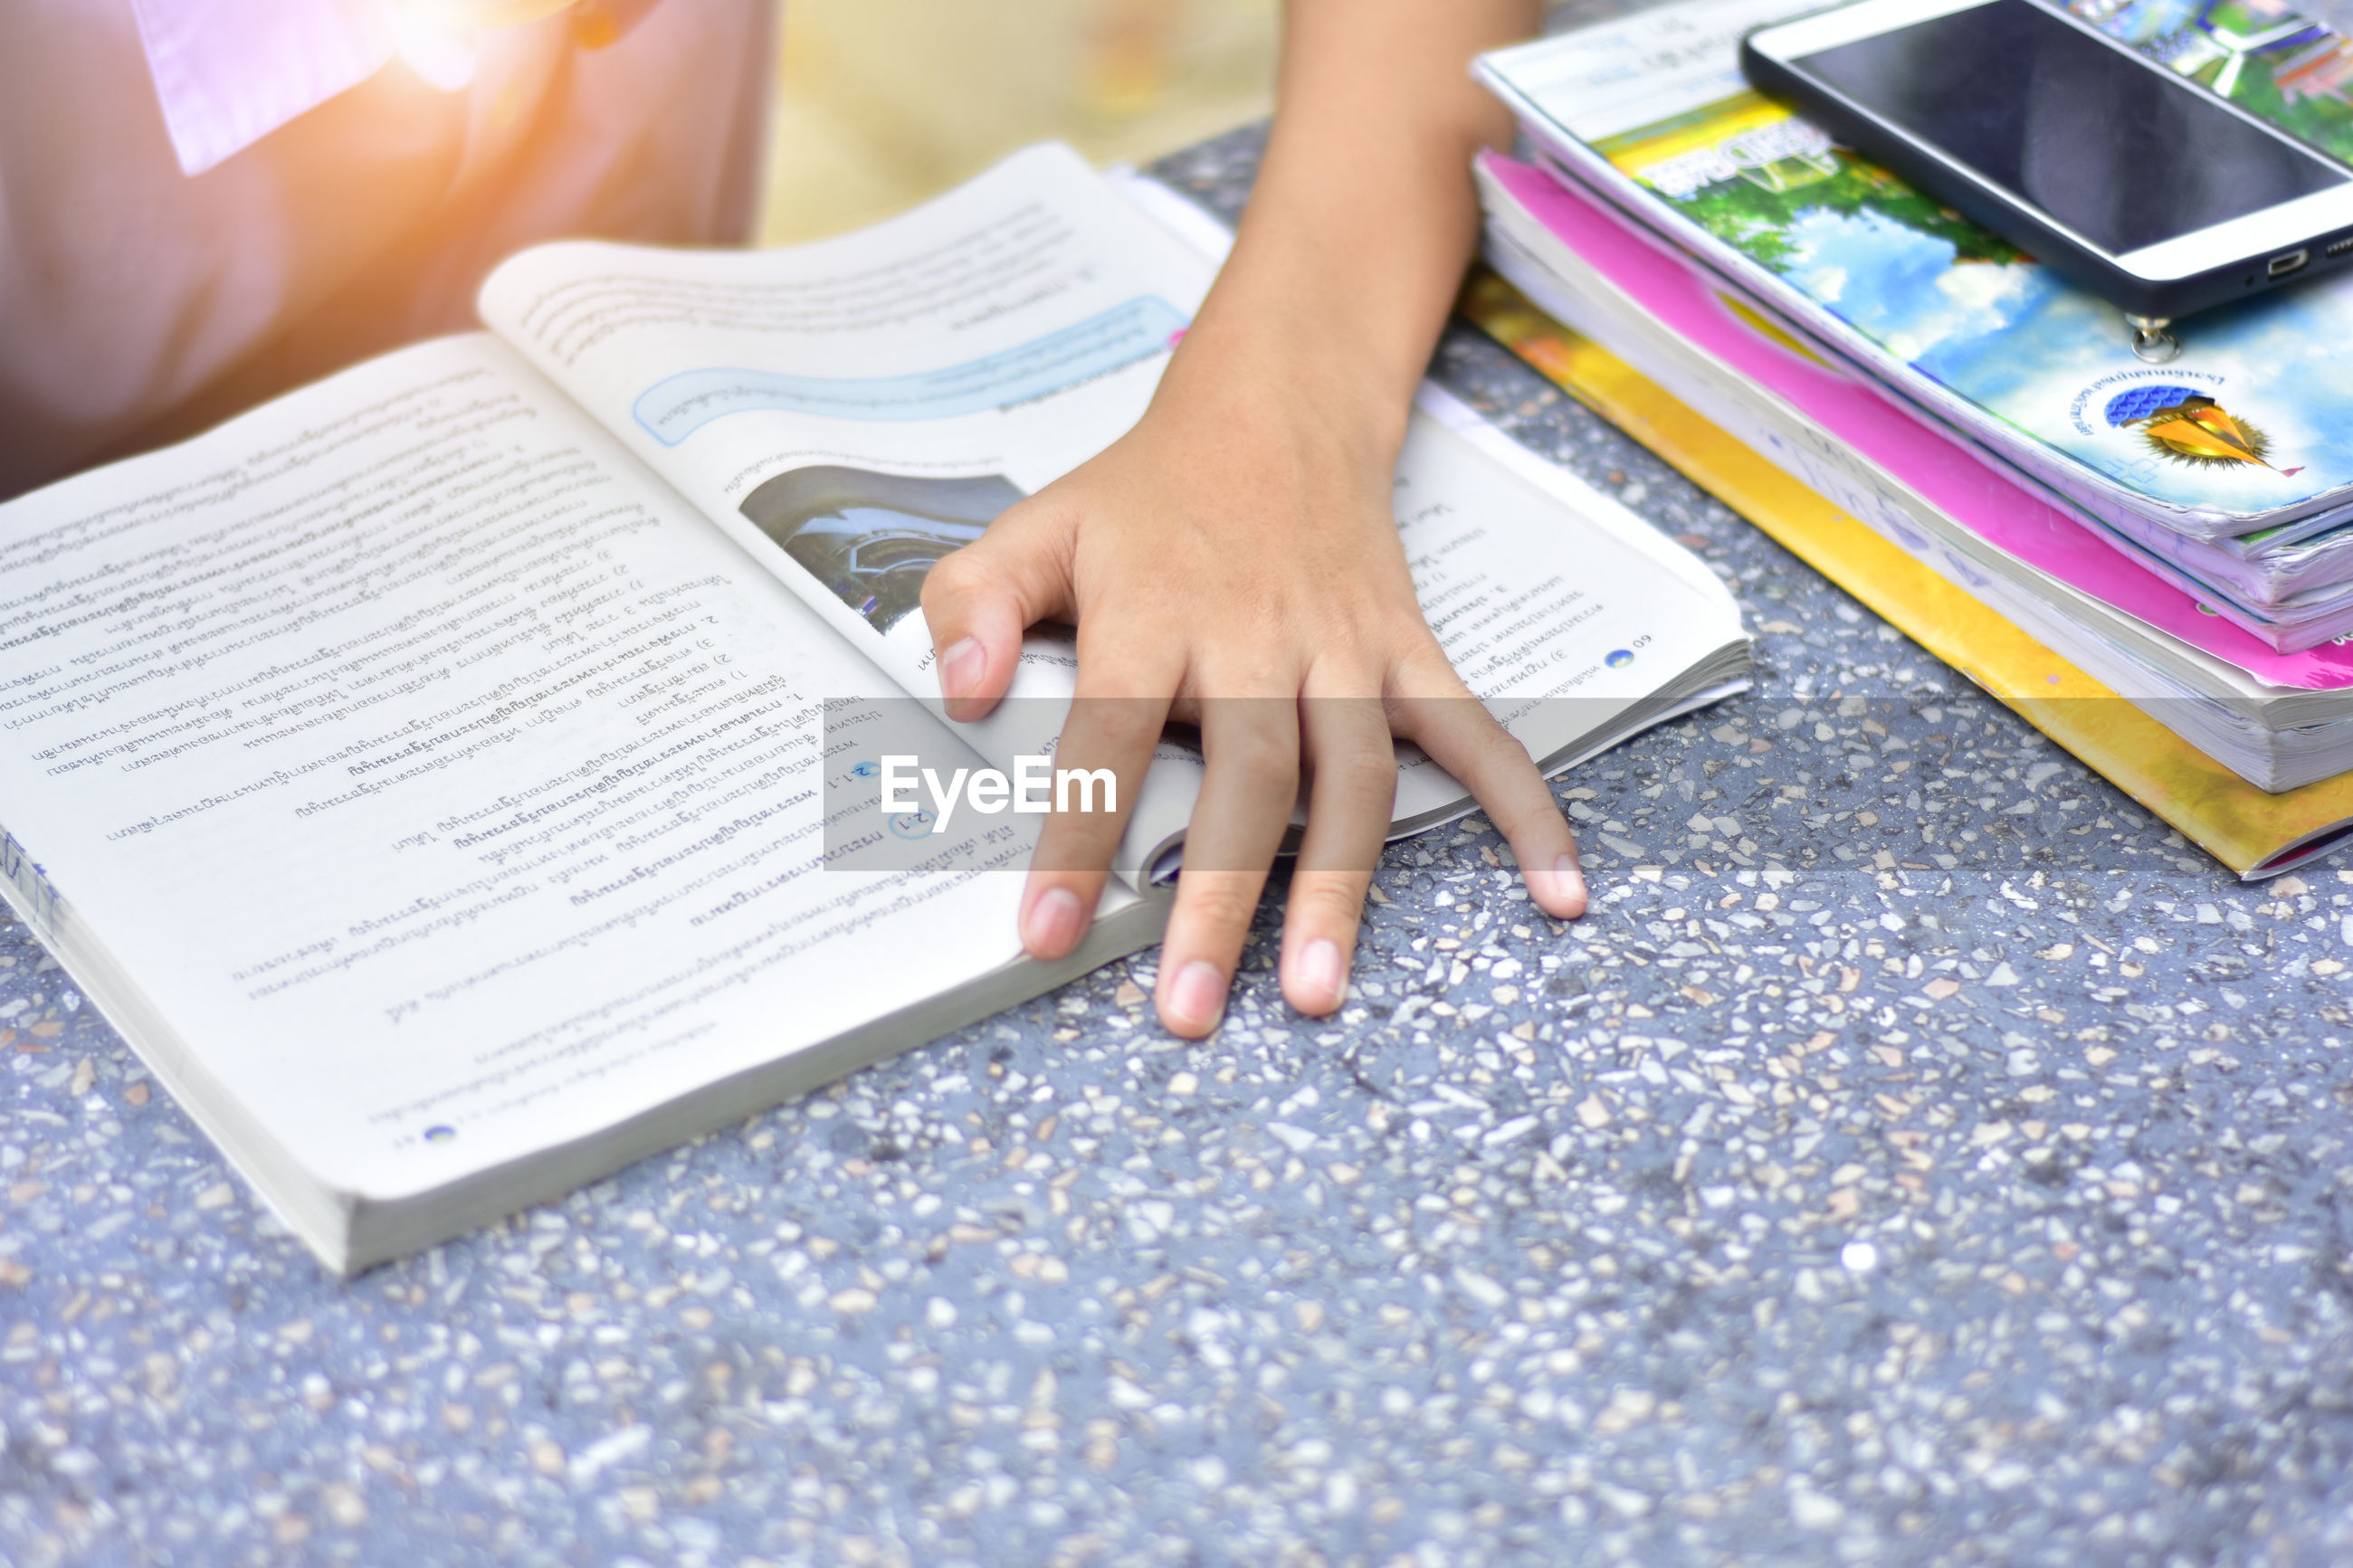 Midsection of student reading book at table